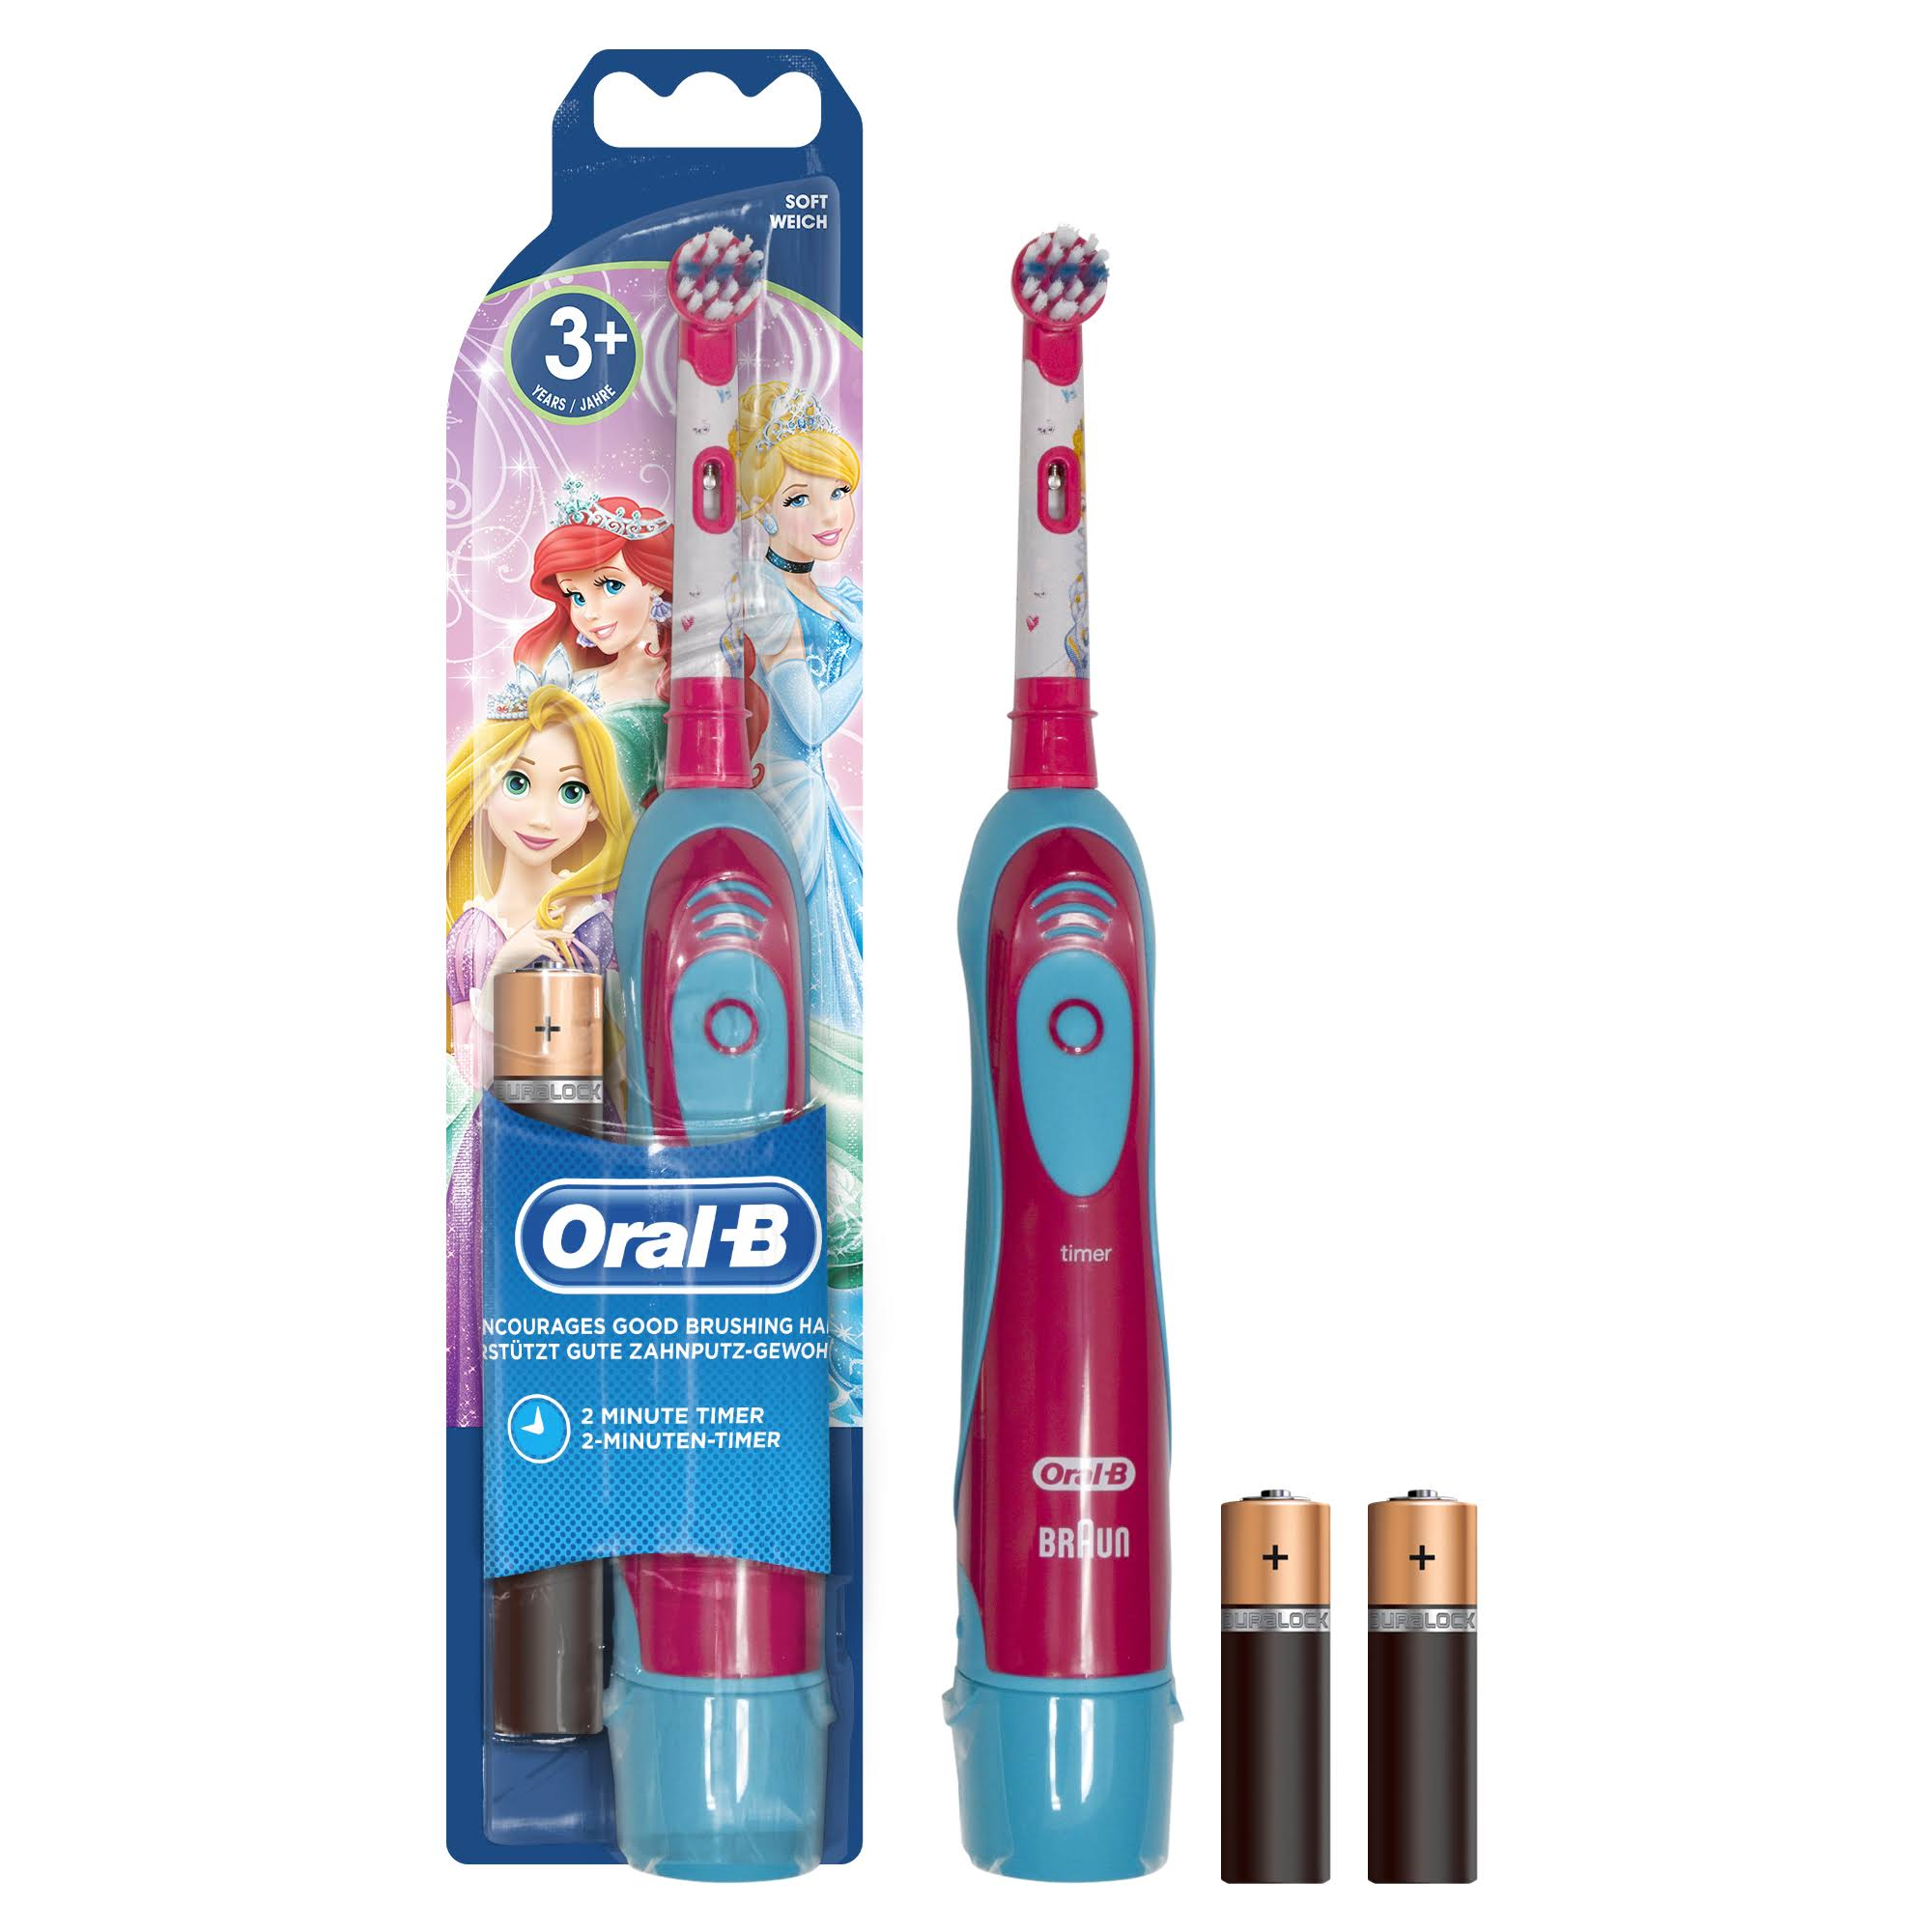 Oral B Advanced Battery Power Kids Toothbrush - Disney Princesses